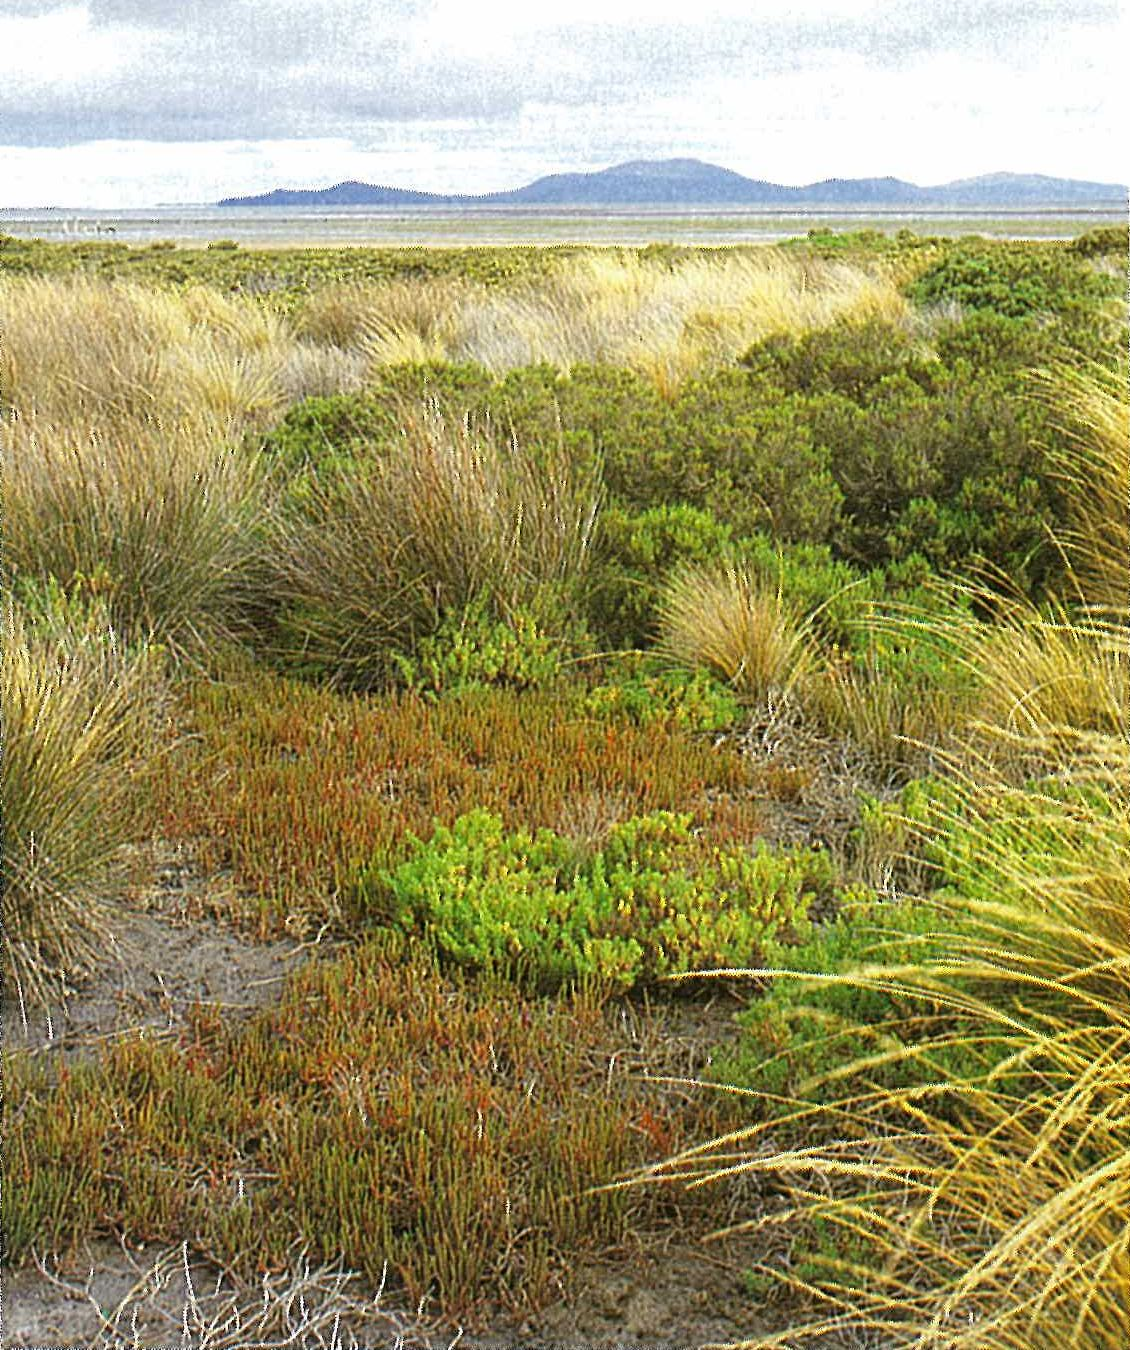 Gippsland Plain; saltmarsh-mangrove. Saltmarsh in foreground with Sarcocornia quinqueflora, Sclerostegia arbuscula and Suaeda australis, merging seaward to Avicennia marina zone, with intervening tussocks of Stipa stipoides and Gahnia trifida. Toora, Corner Inlet (Wilsons Promontory in background).